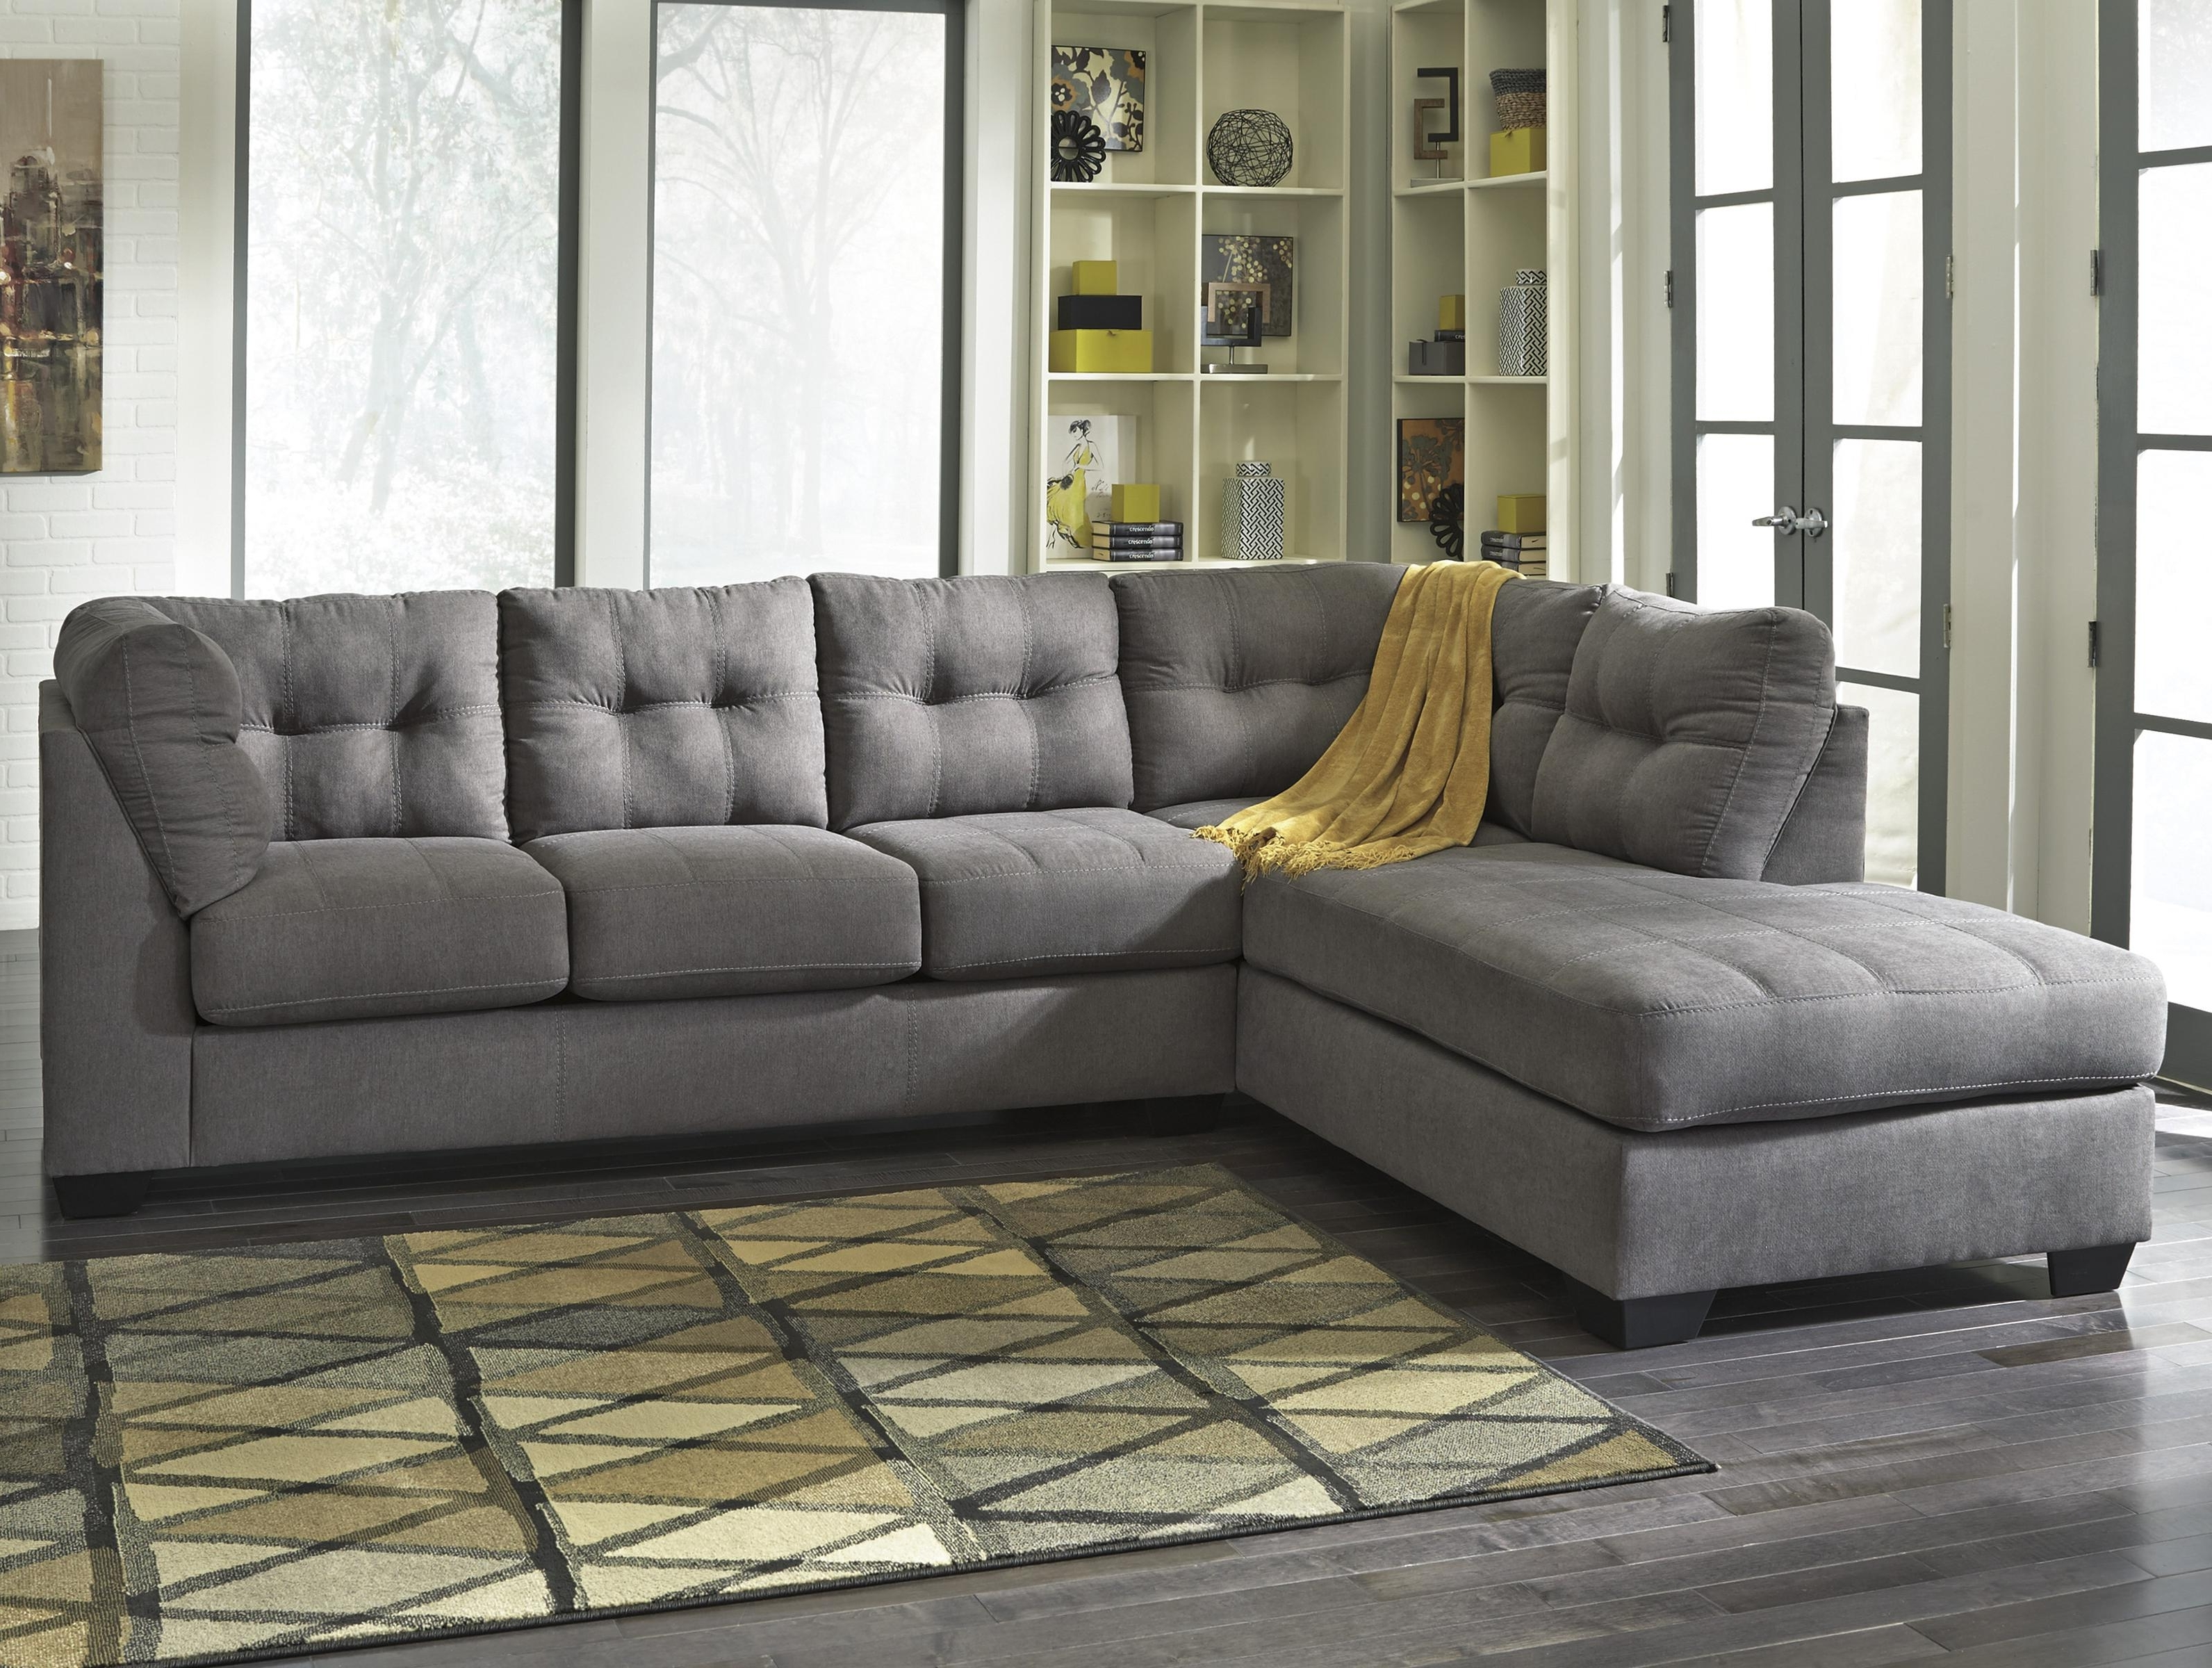 Most Recently Released Sectional Sofas With Cuddler Chaise Within Benchcraft Maier – Charcoal 2 Piece Sectional W/ Sleeper Sofa (View 14 of 15)